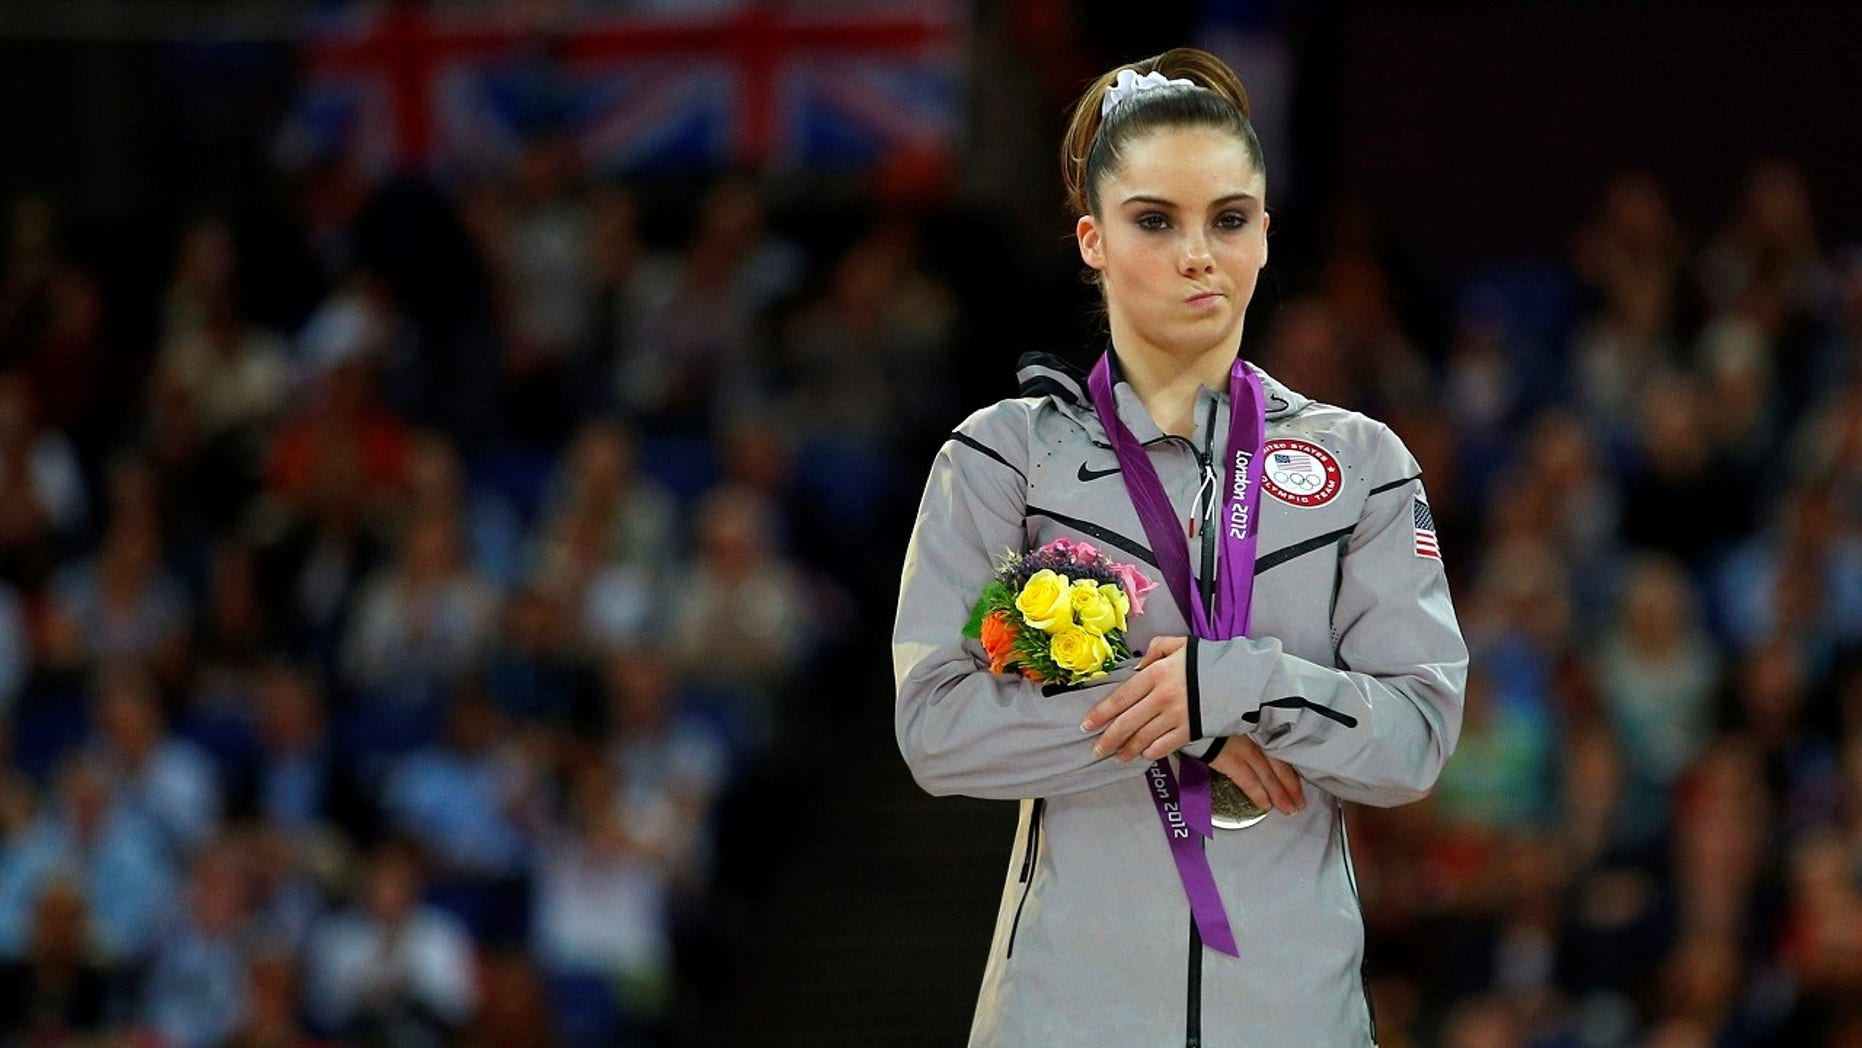 McKayla Maroney said Larry Nassar would manipulate her by earning her trust with food.